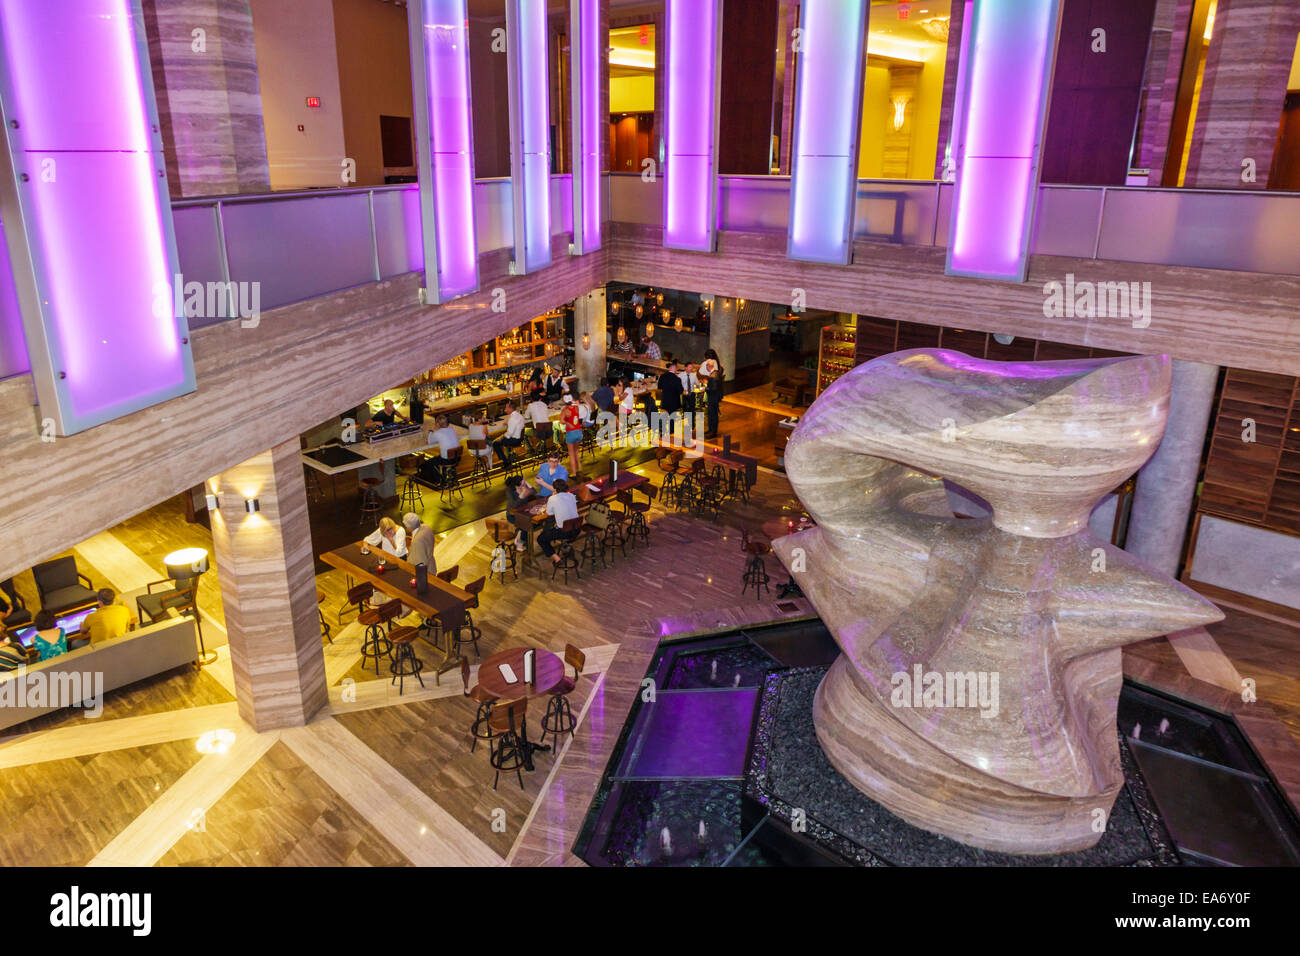 Miami Florida Intercontinental hotel lobby The Spindle sculptor Henry Moore travertine marble sculpture art - Stock Image